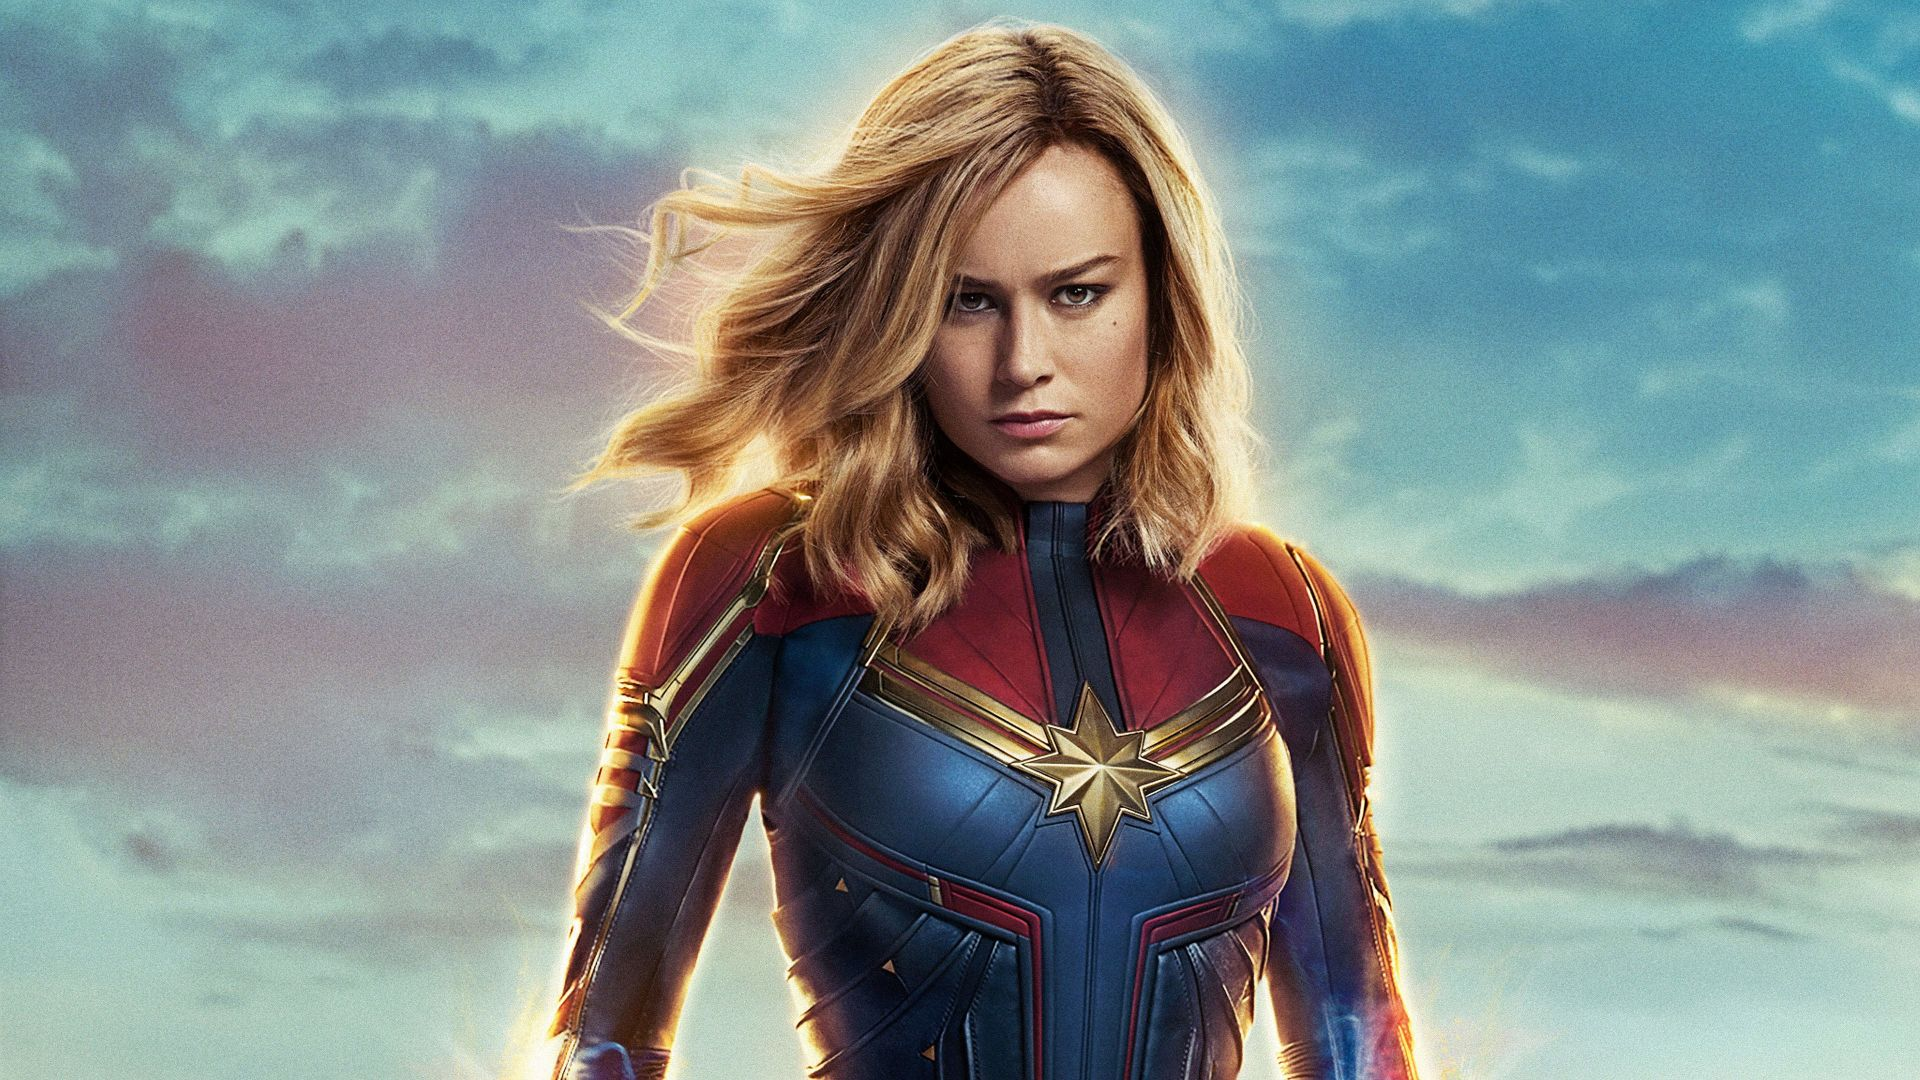 Wallpaper Captain Marvel Brie Larson 4k Movies 21113